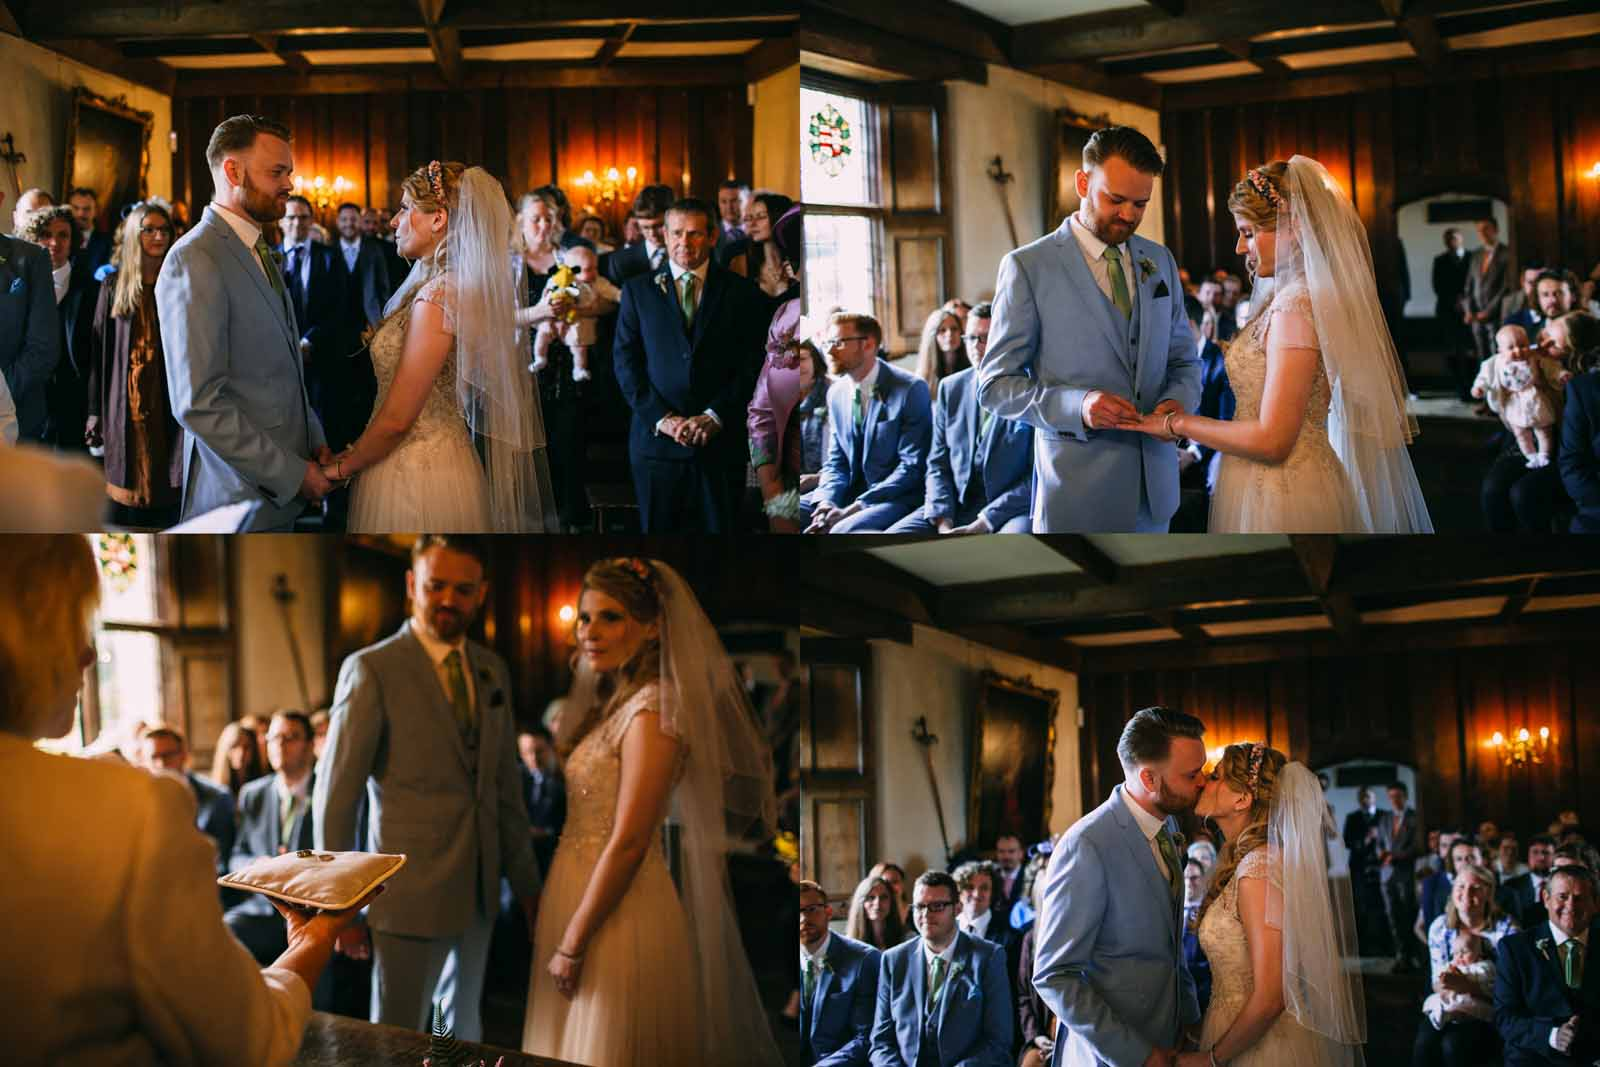 Sulgrave-Manor-Wedding-Victoria-Jon-240